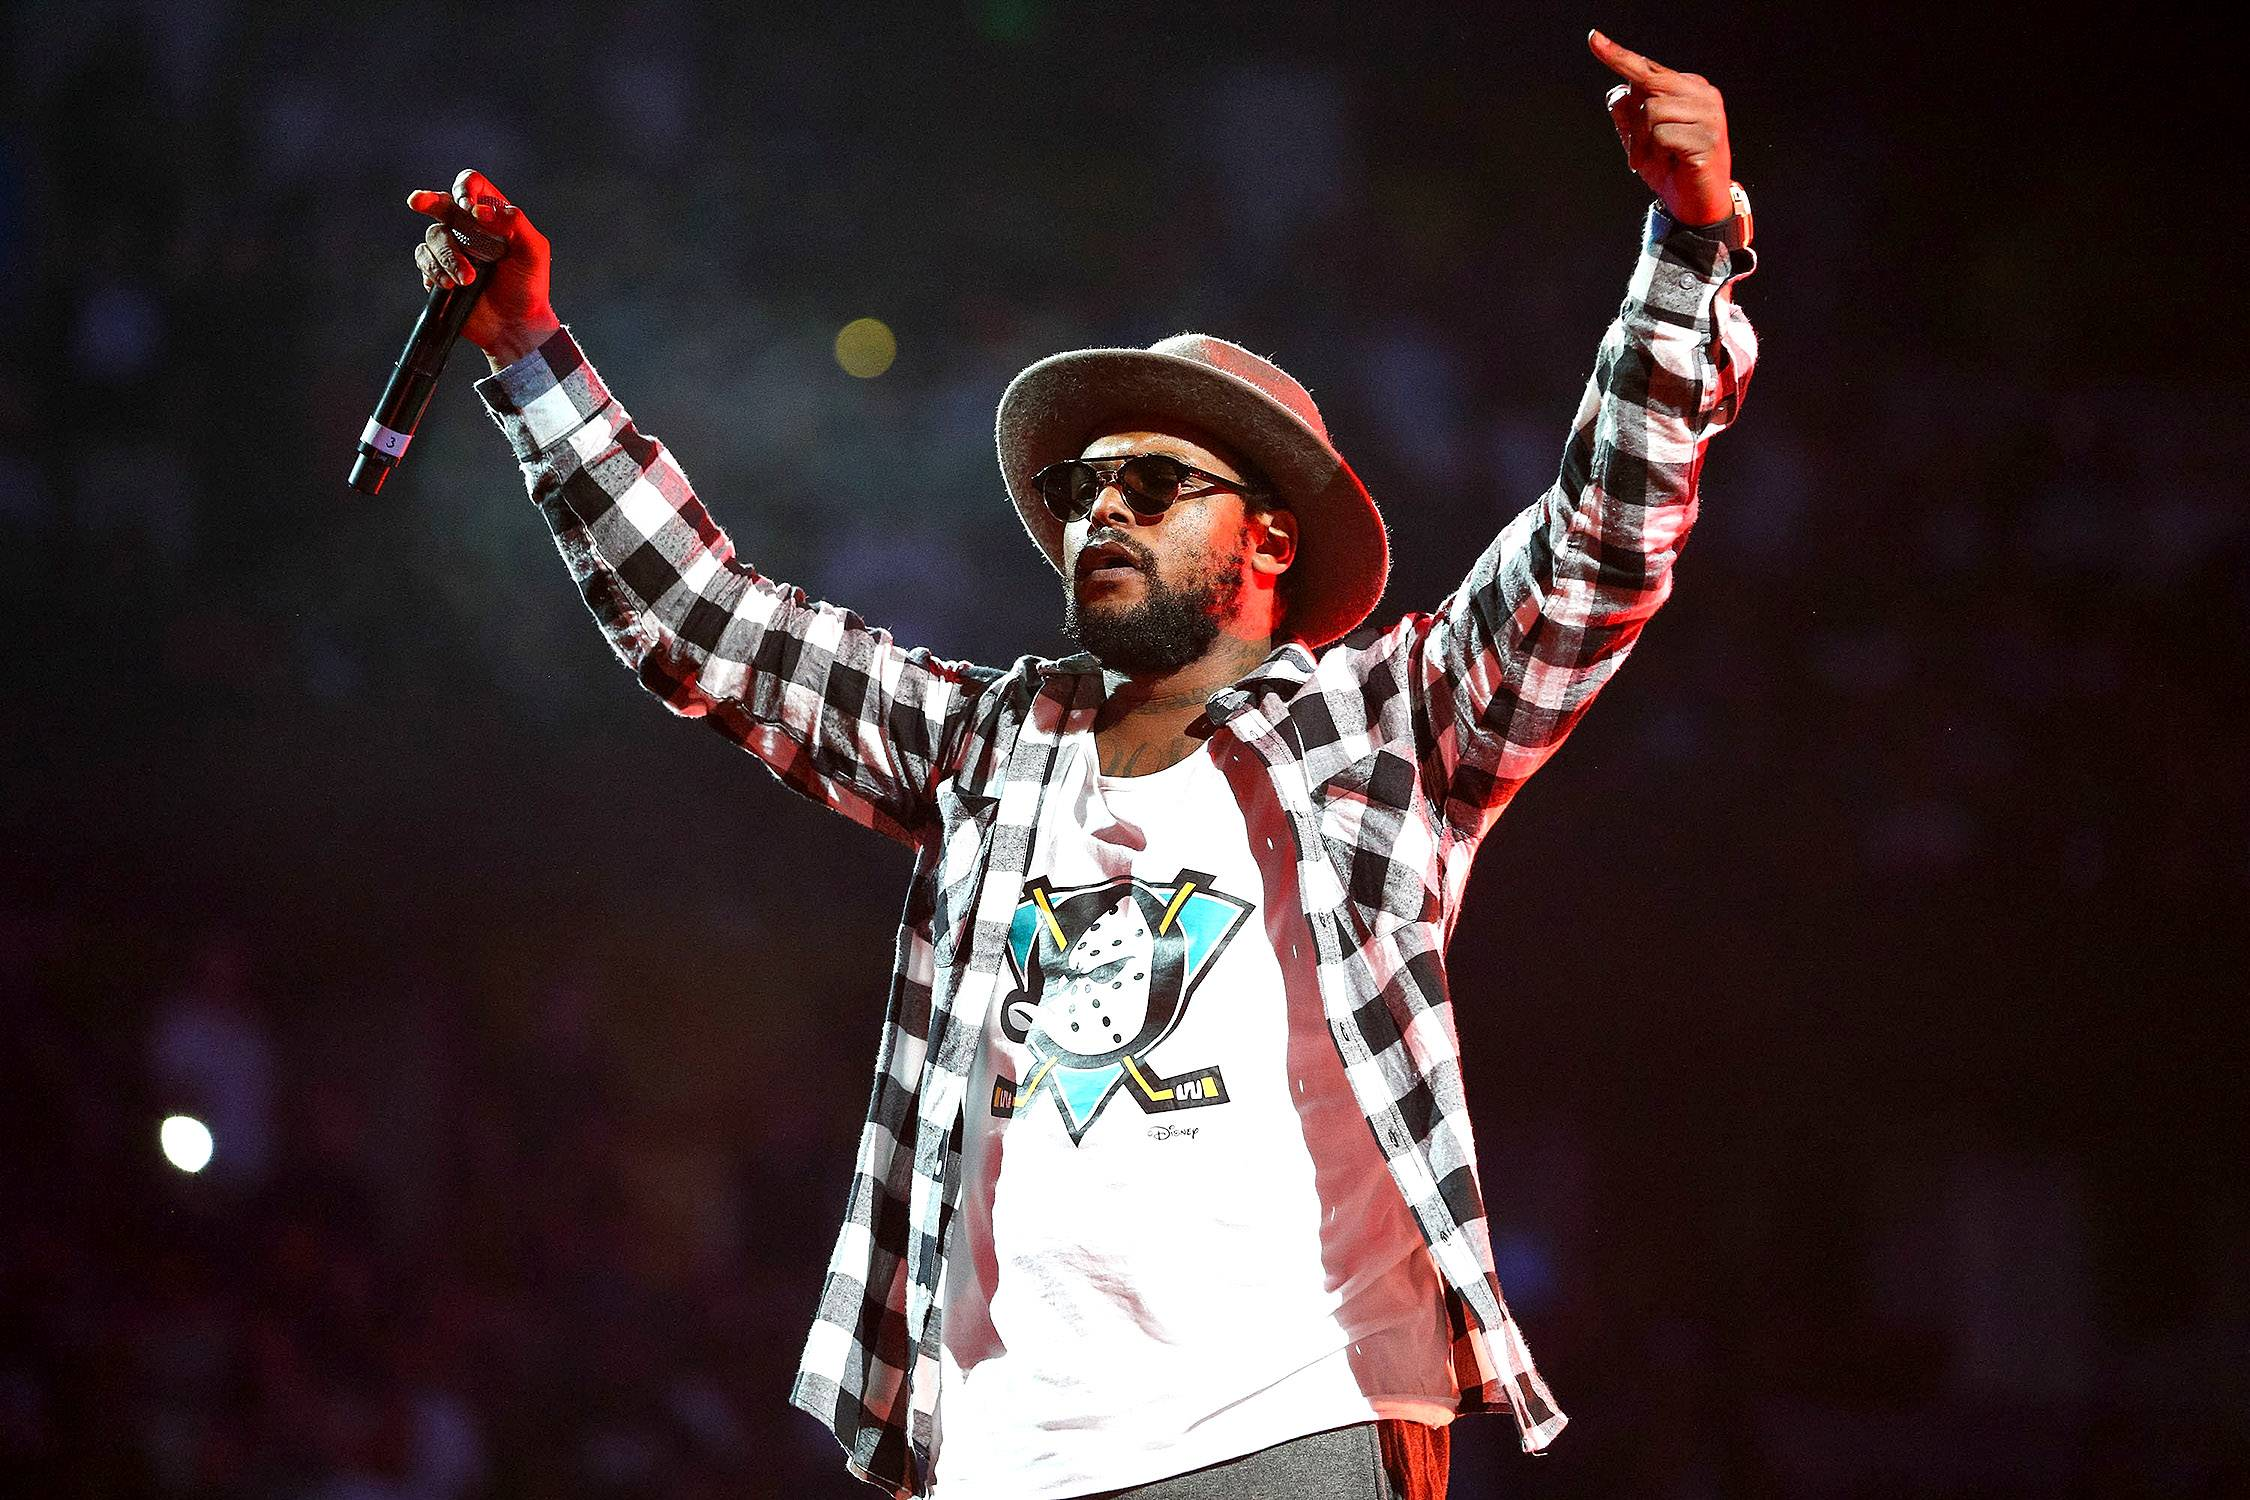 """ScHoolboy Q - The """"Collard Greens"""" MC goes hard for L.A., but was born in Wiesbaden, Germany. (Photo: Imeh Akpanudosen/Getty Images)"""